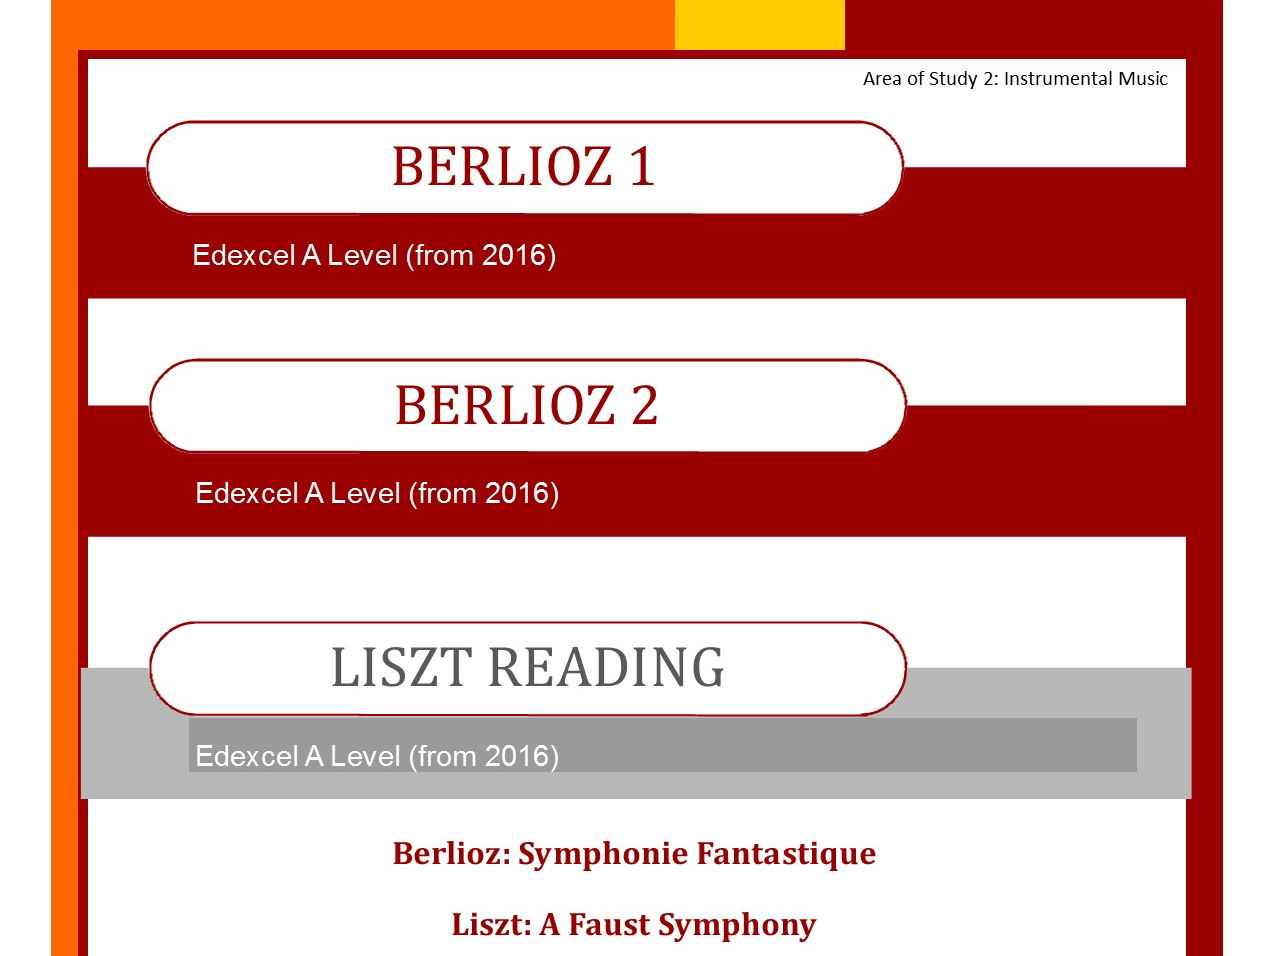 Edexcel Music A Level Bundle Berlioz 1, Berlioz 2 and Liszt Reading